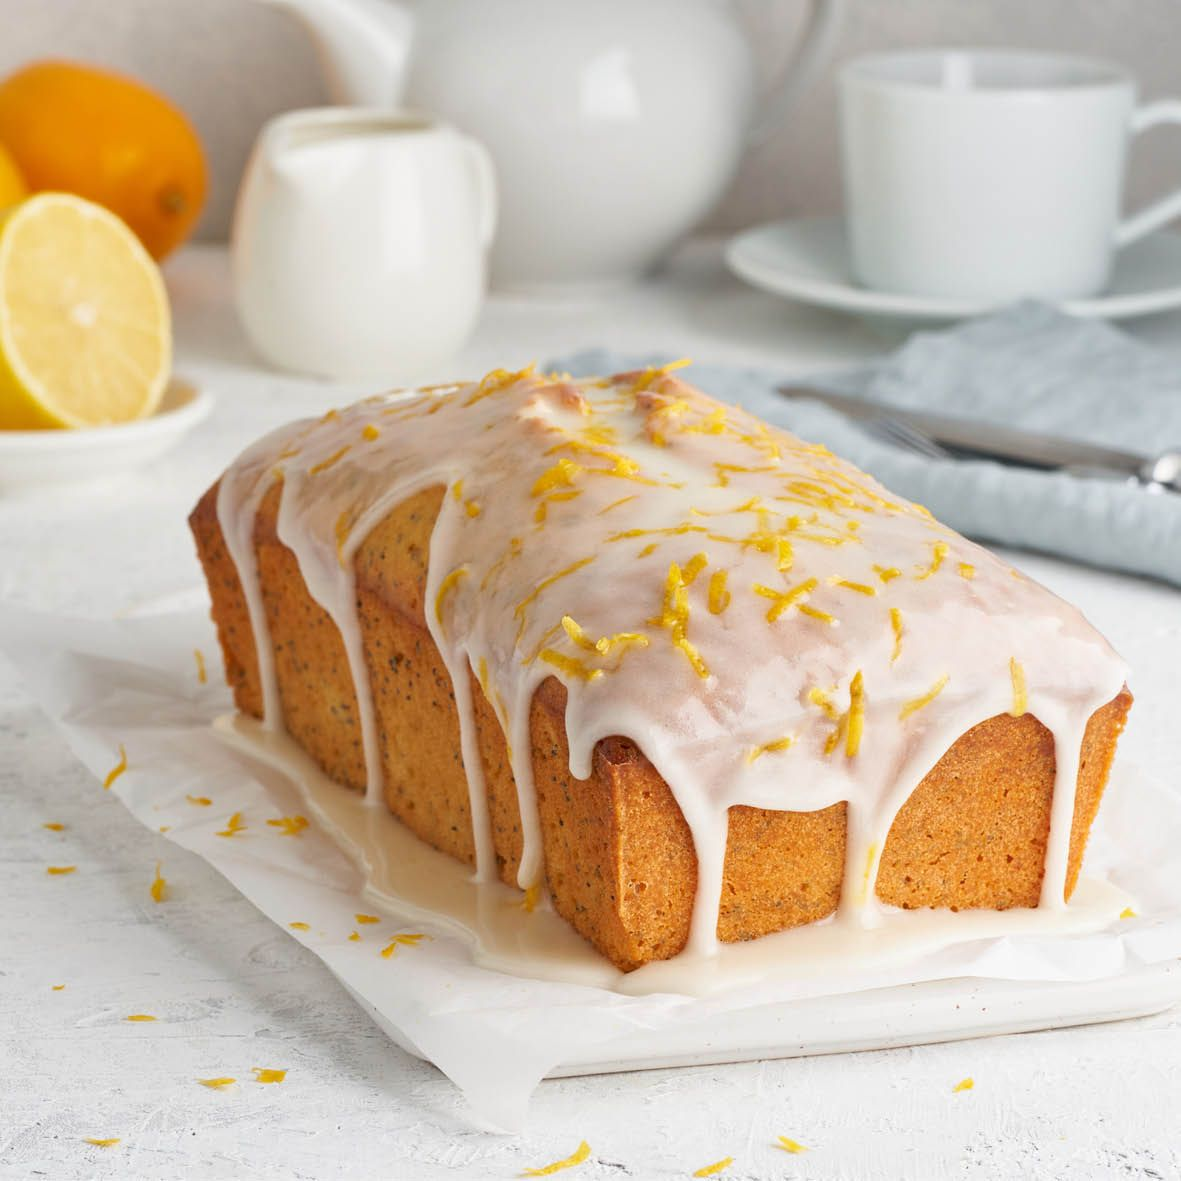 Orange_and_Lemon_Poppy_Seed_Cake.jpg